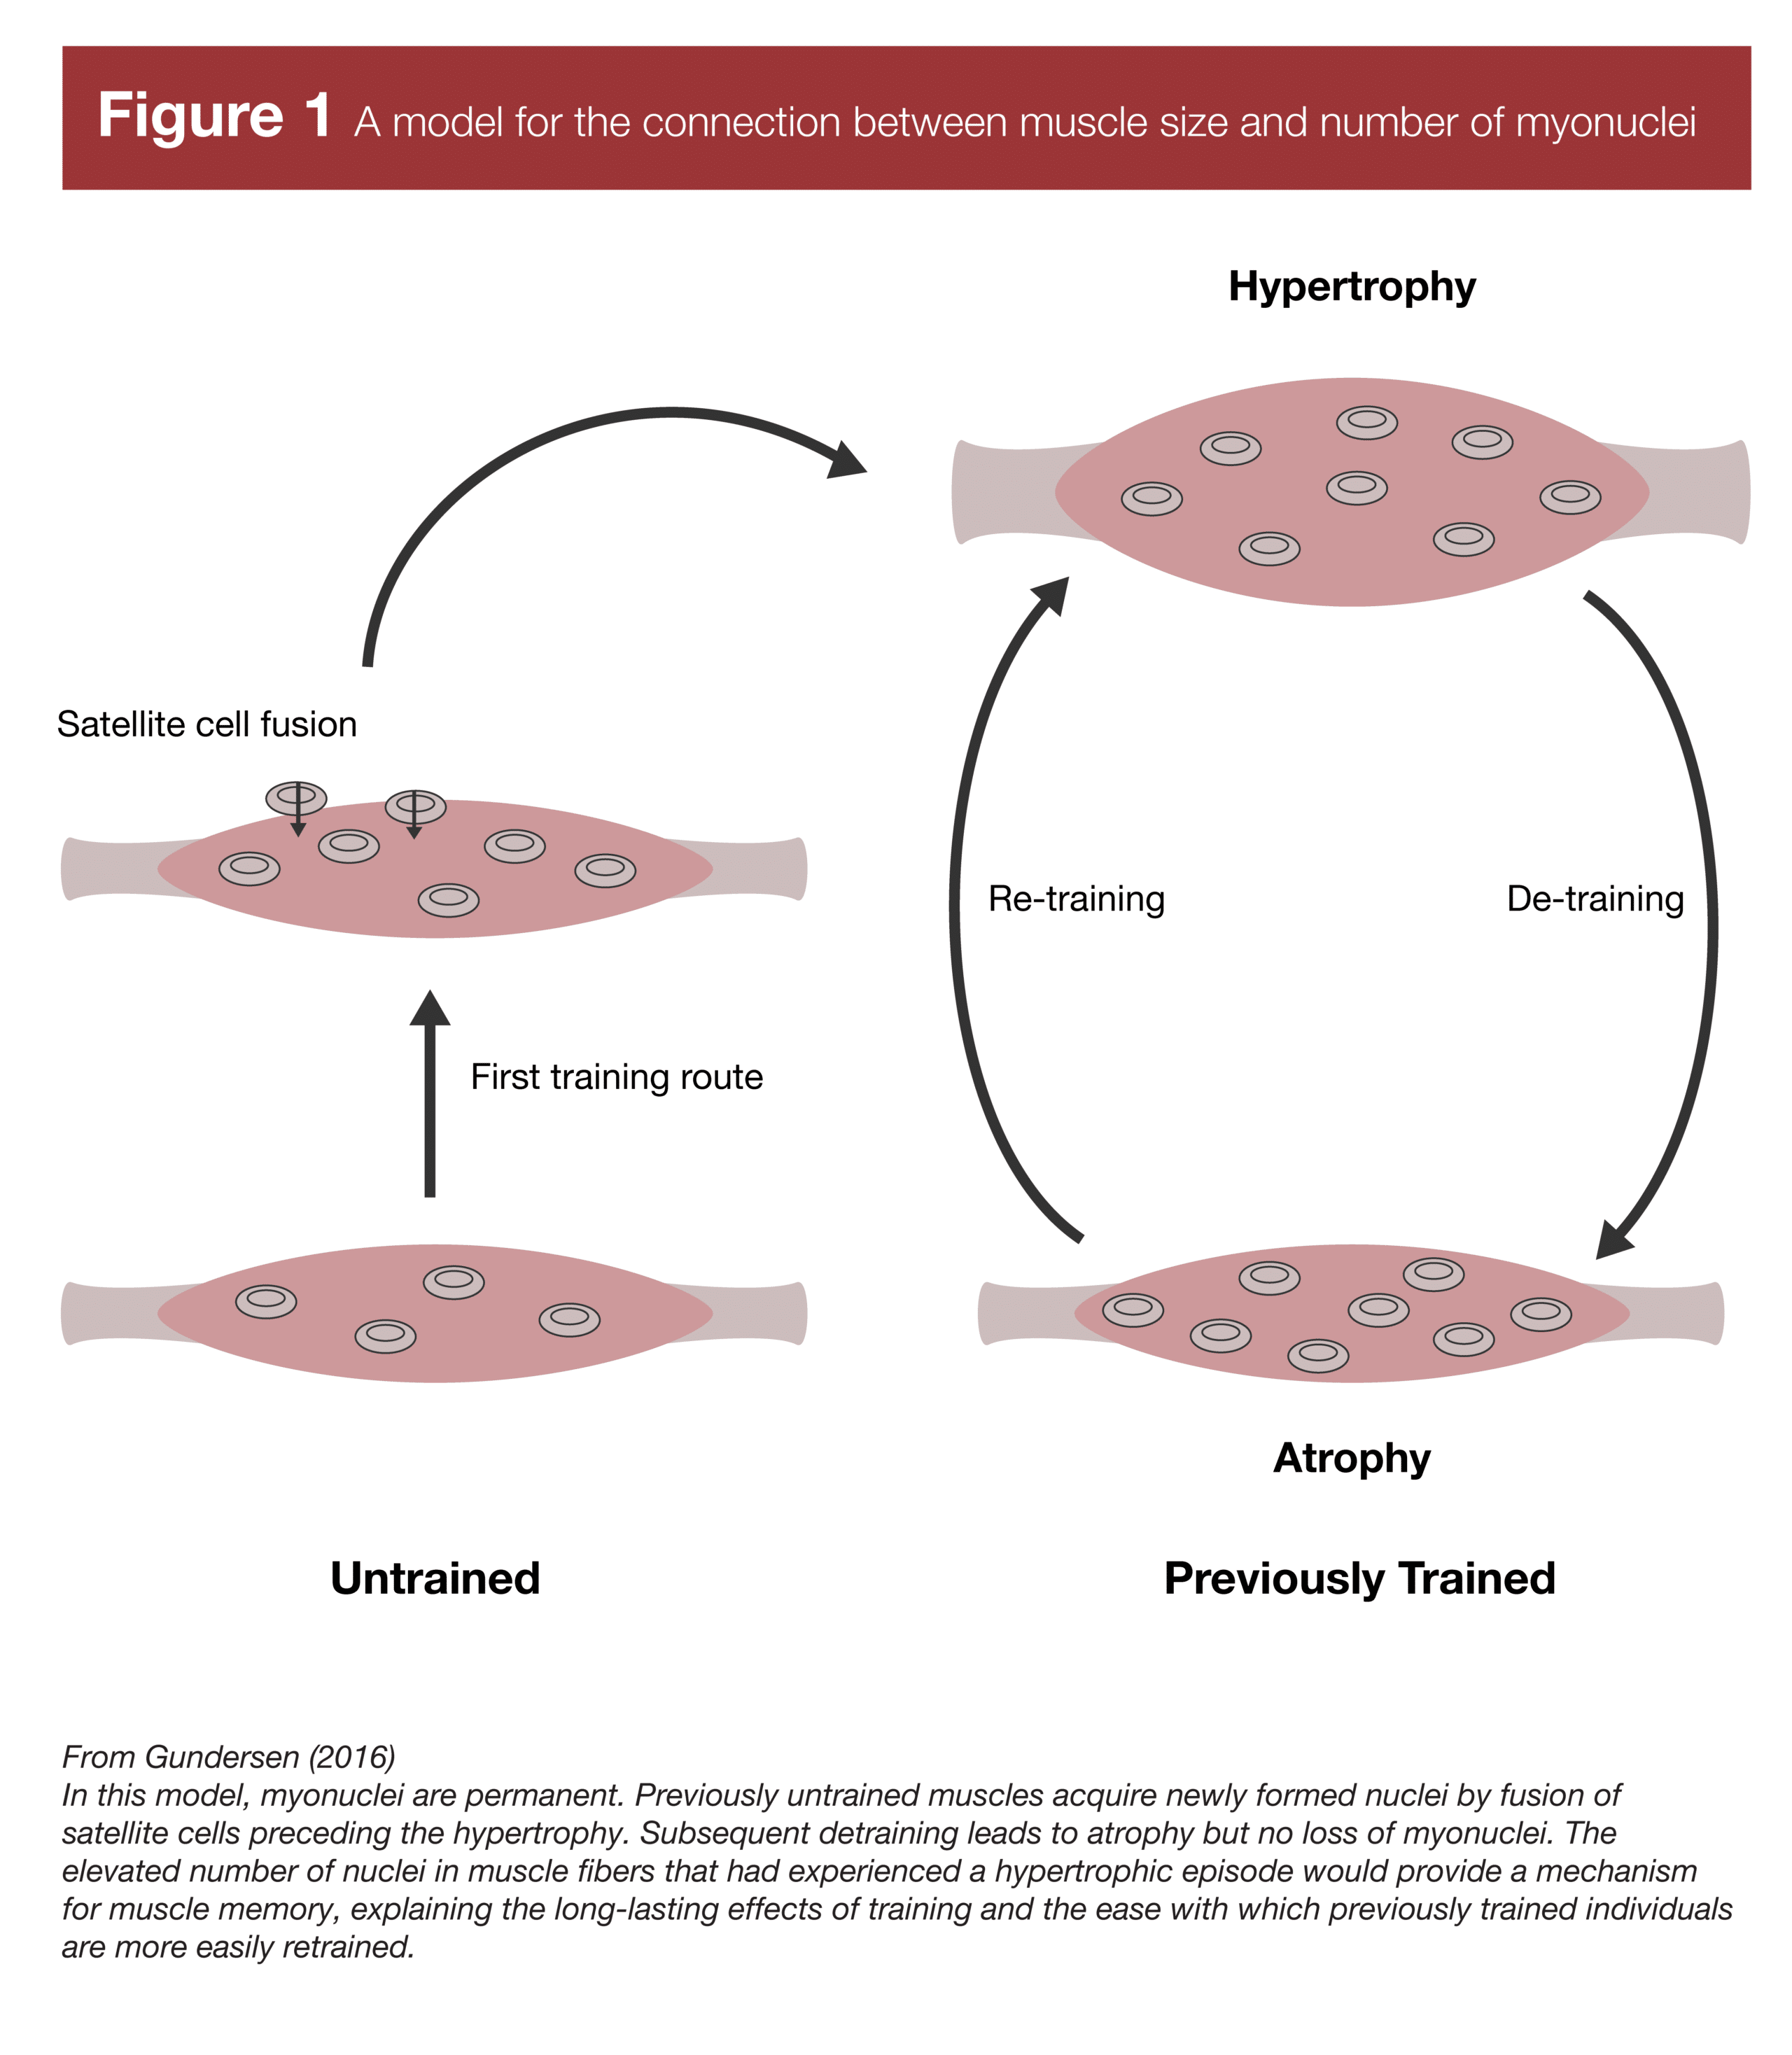 A model for the connection between muscle size and number of myonuclei